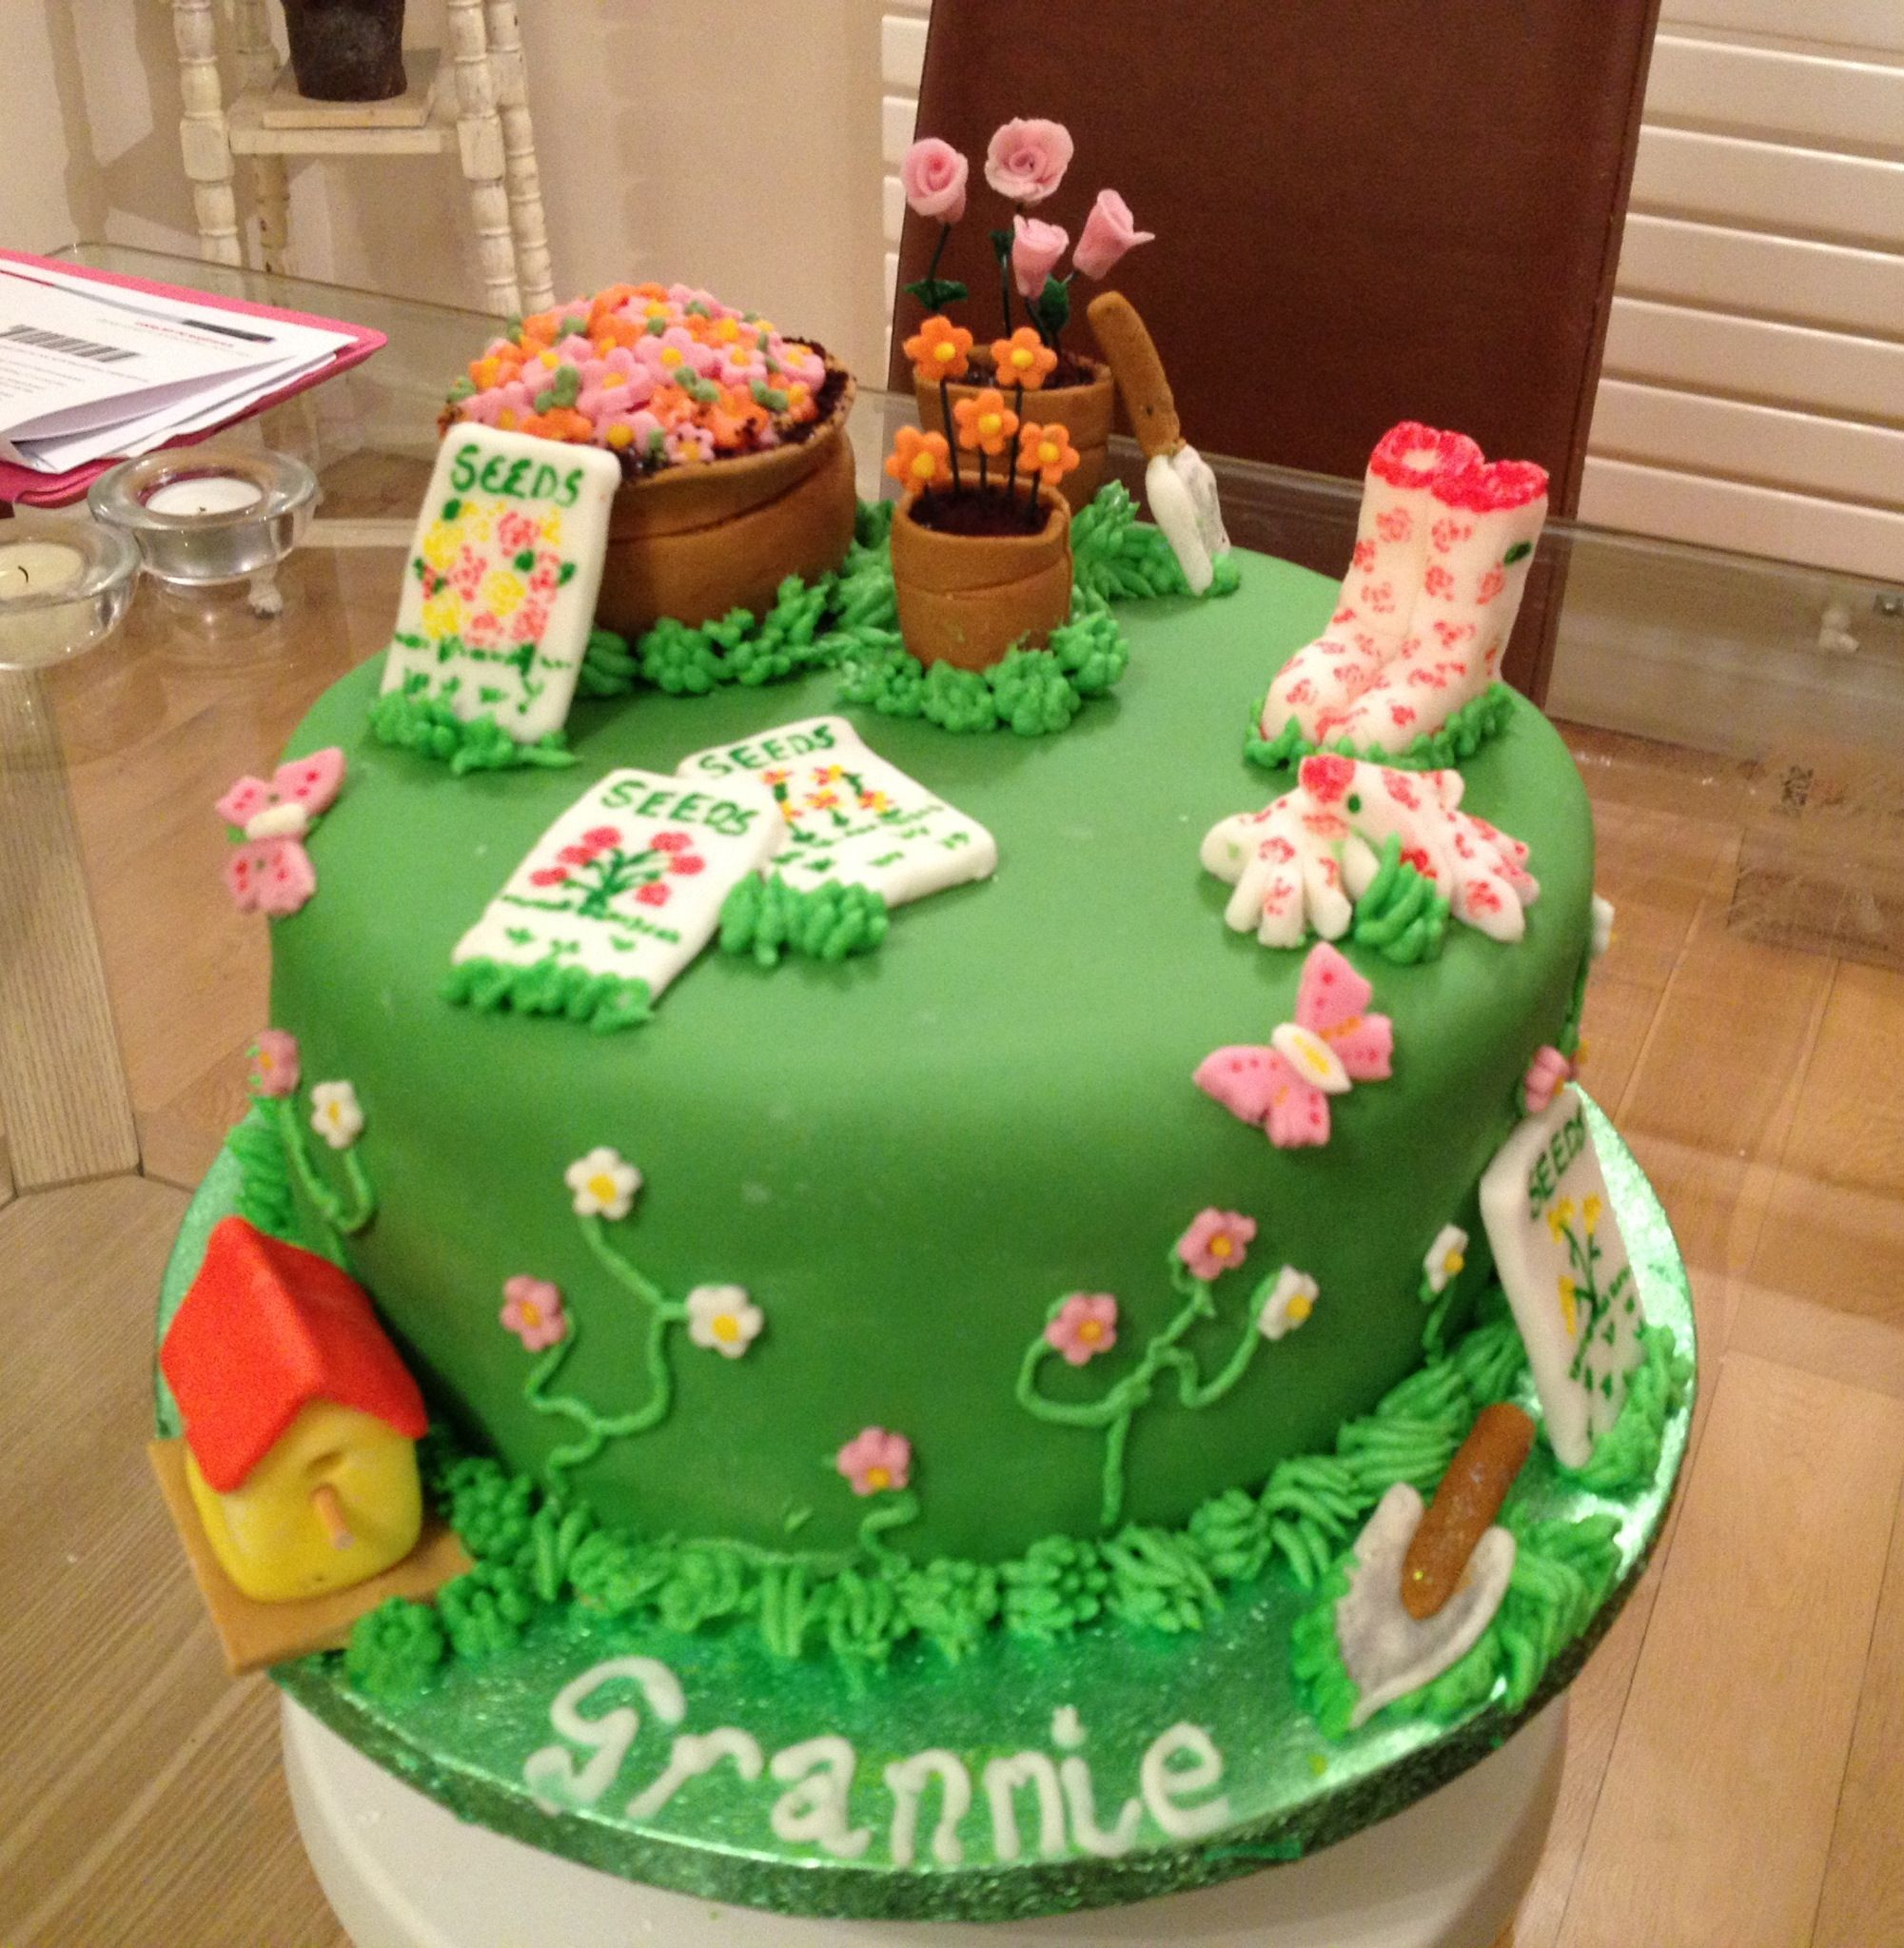 garden cake for all your cake decorating supplies please visit - Cake Decorating Supplies Near Me